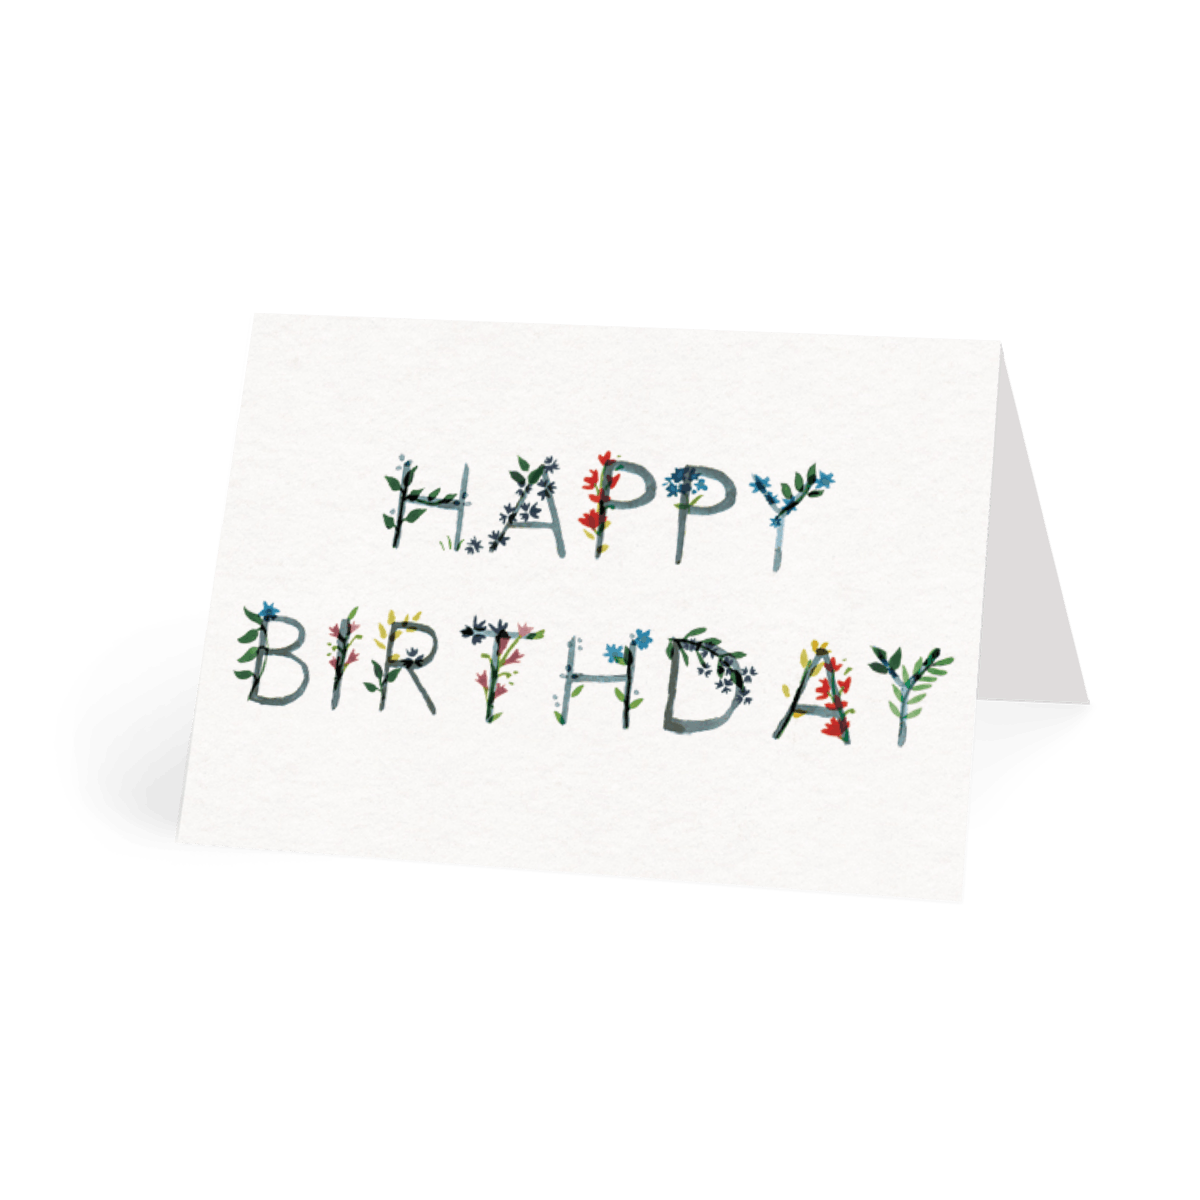 Https%3a%2f%2fwww.papier.com%2fproduct image%2f1168%2f14%2fhappy birthday floral 337 front 1453909709.png?ixlib=rb 1.1